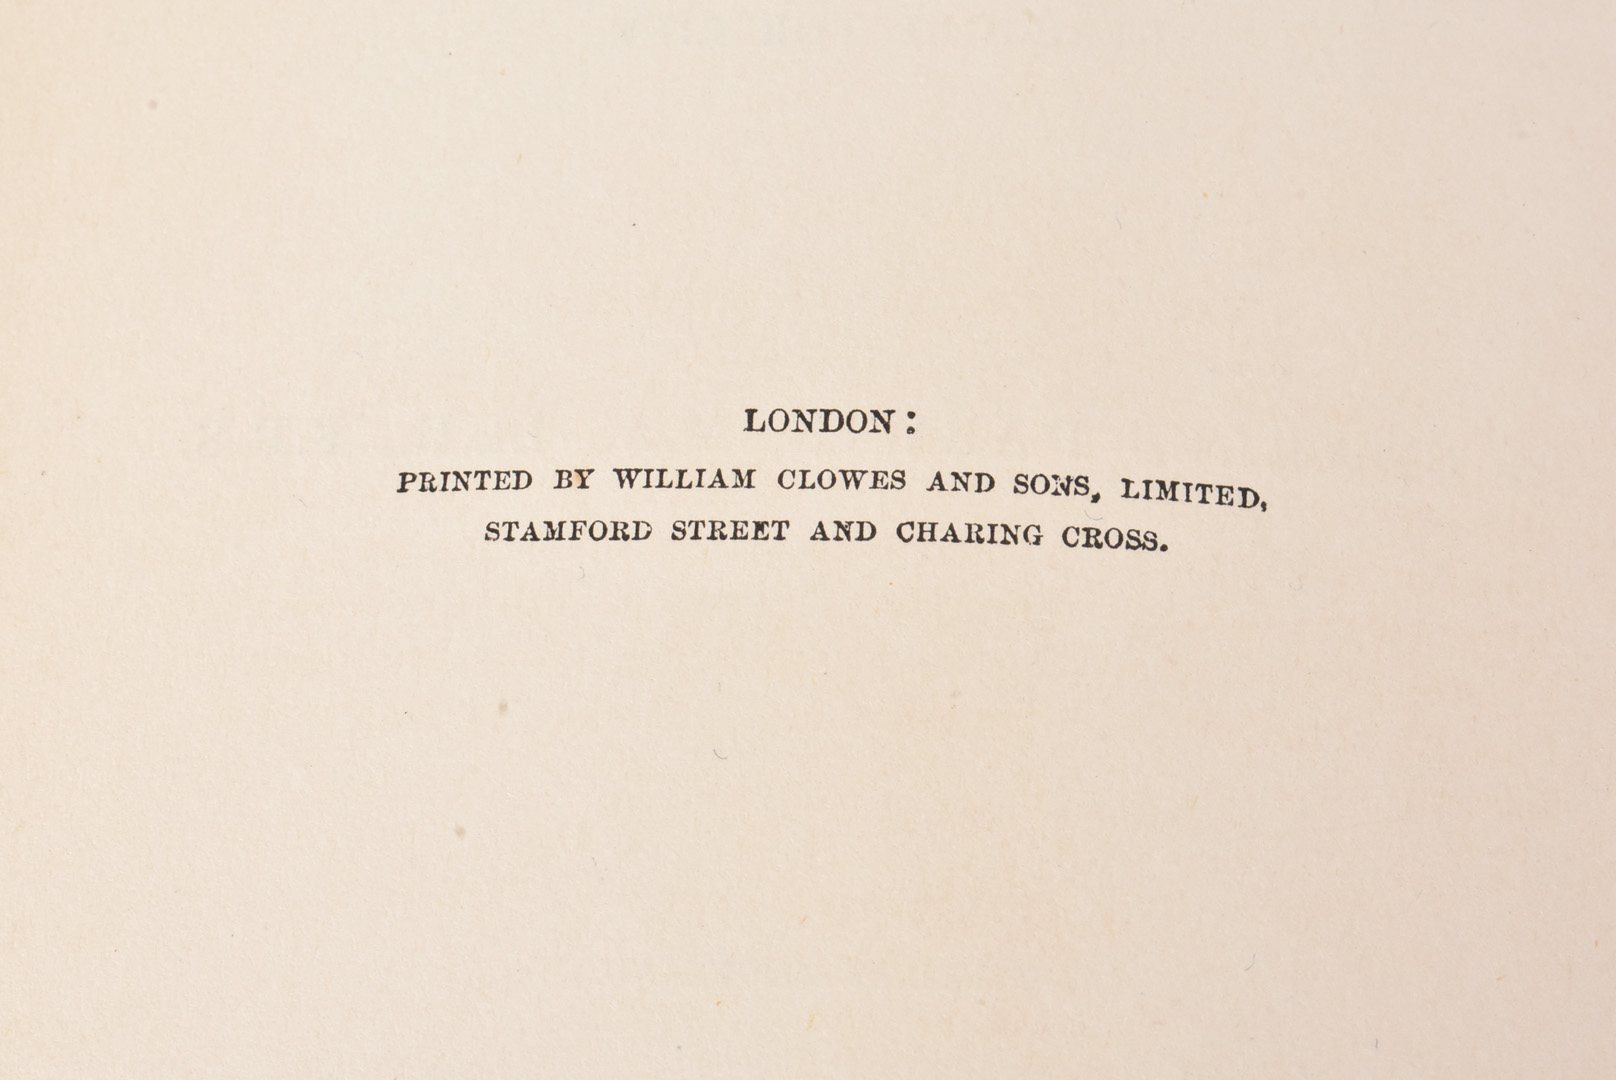 Charles Darwin, The Origin of Species, by Means of Natural Selection, or the Preservation of - Image 4 of 5